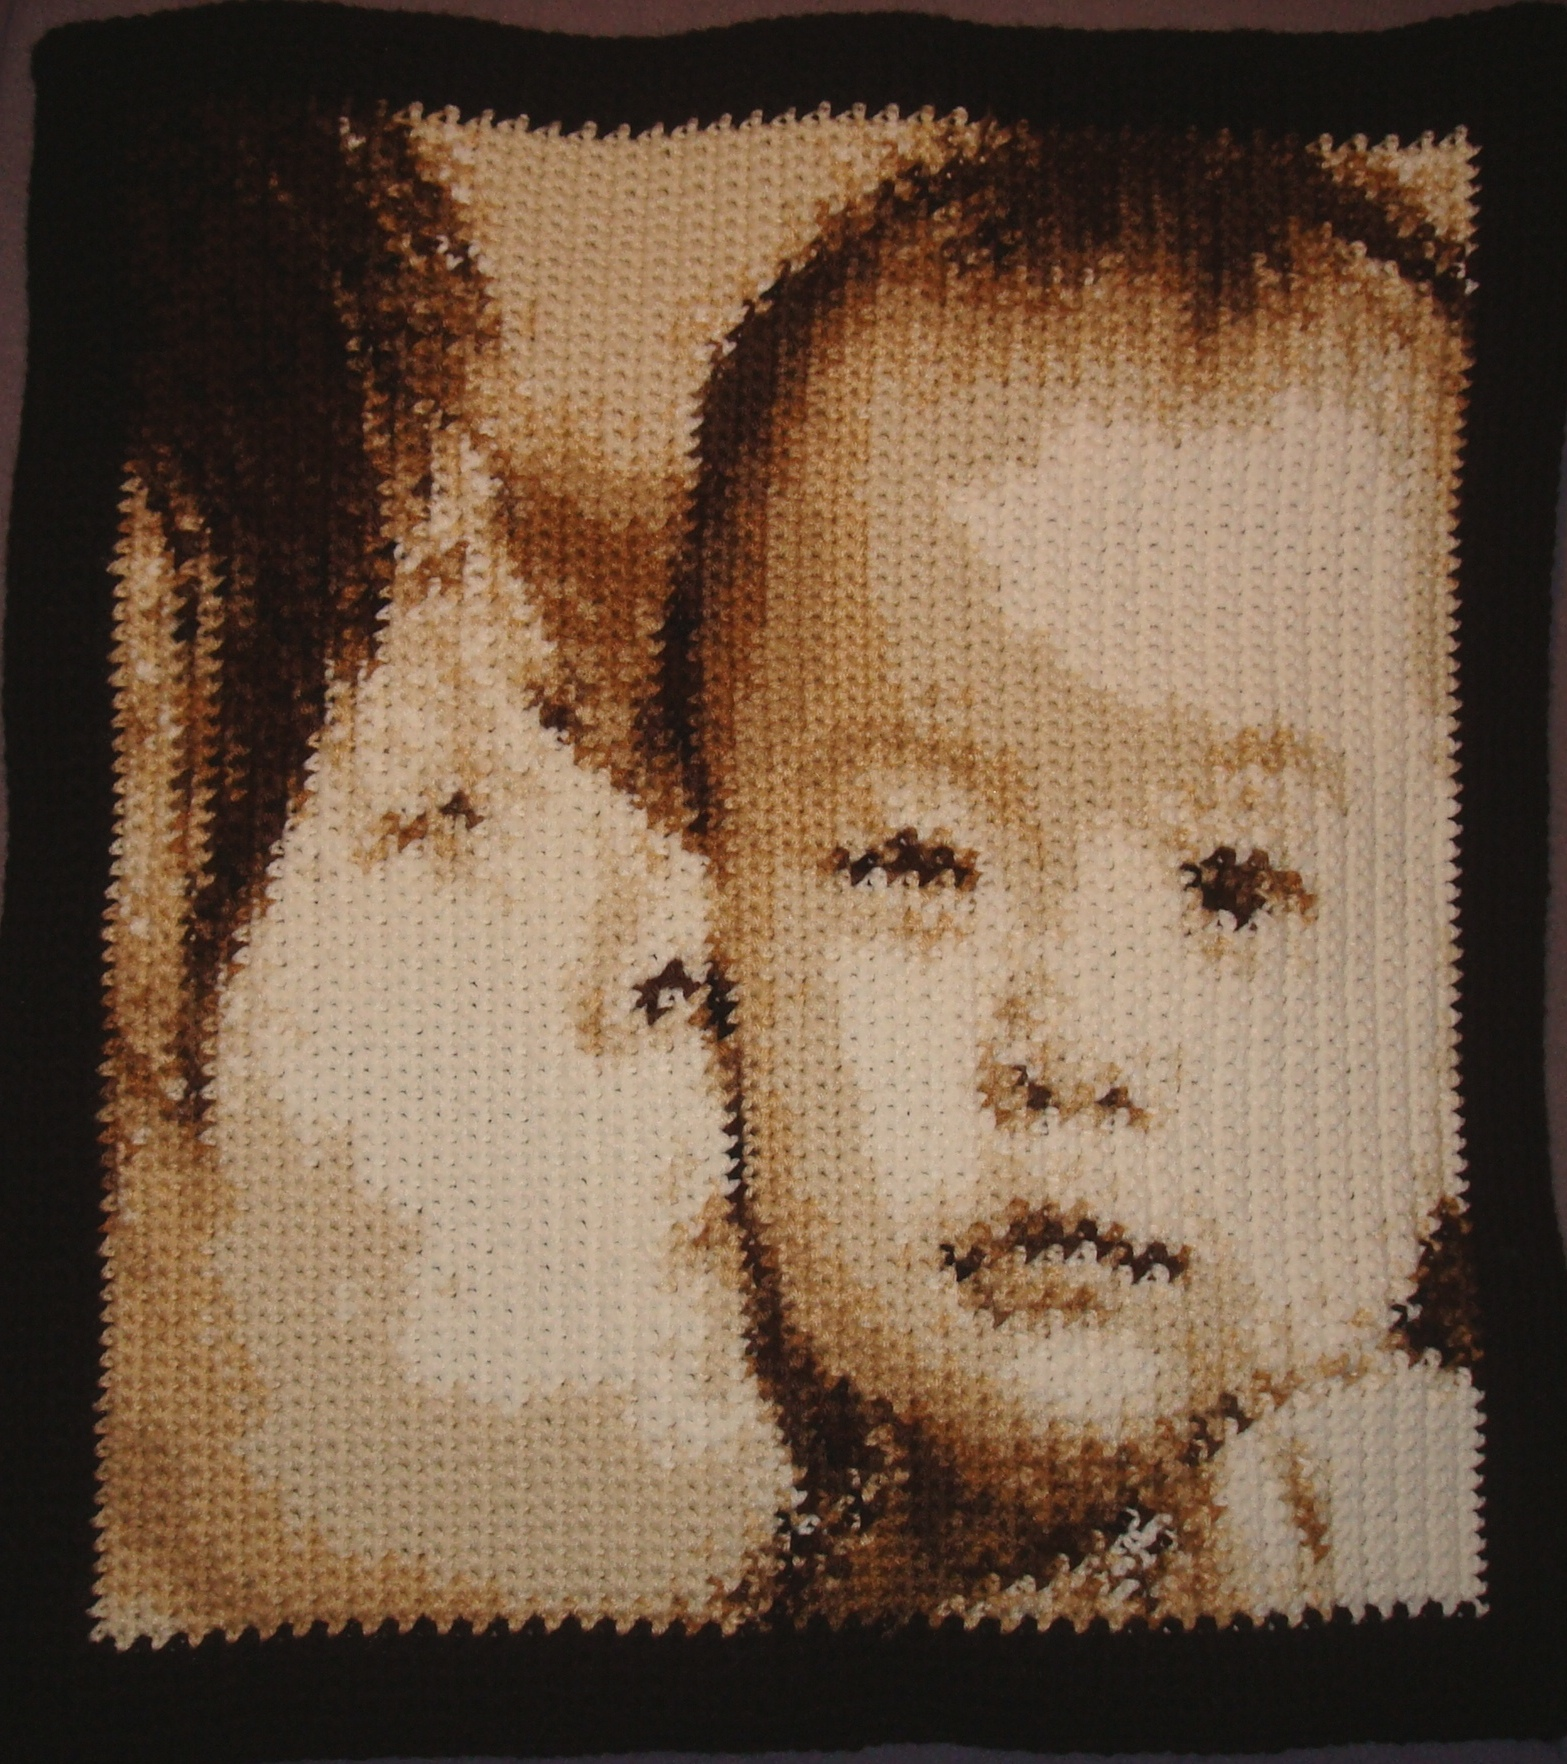 How You Can Create a Crocheted Portrait Like This One